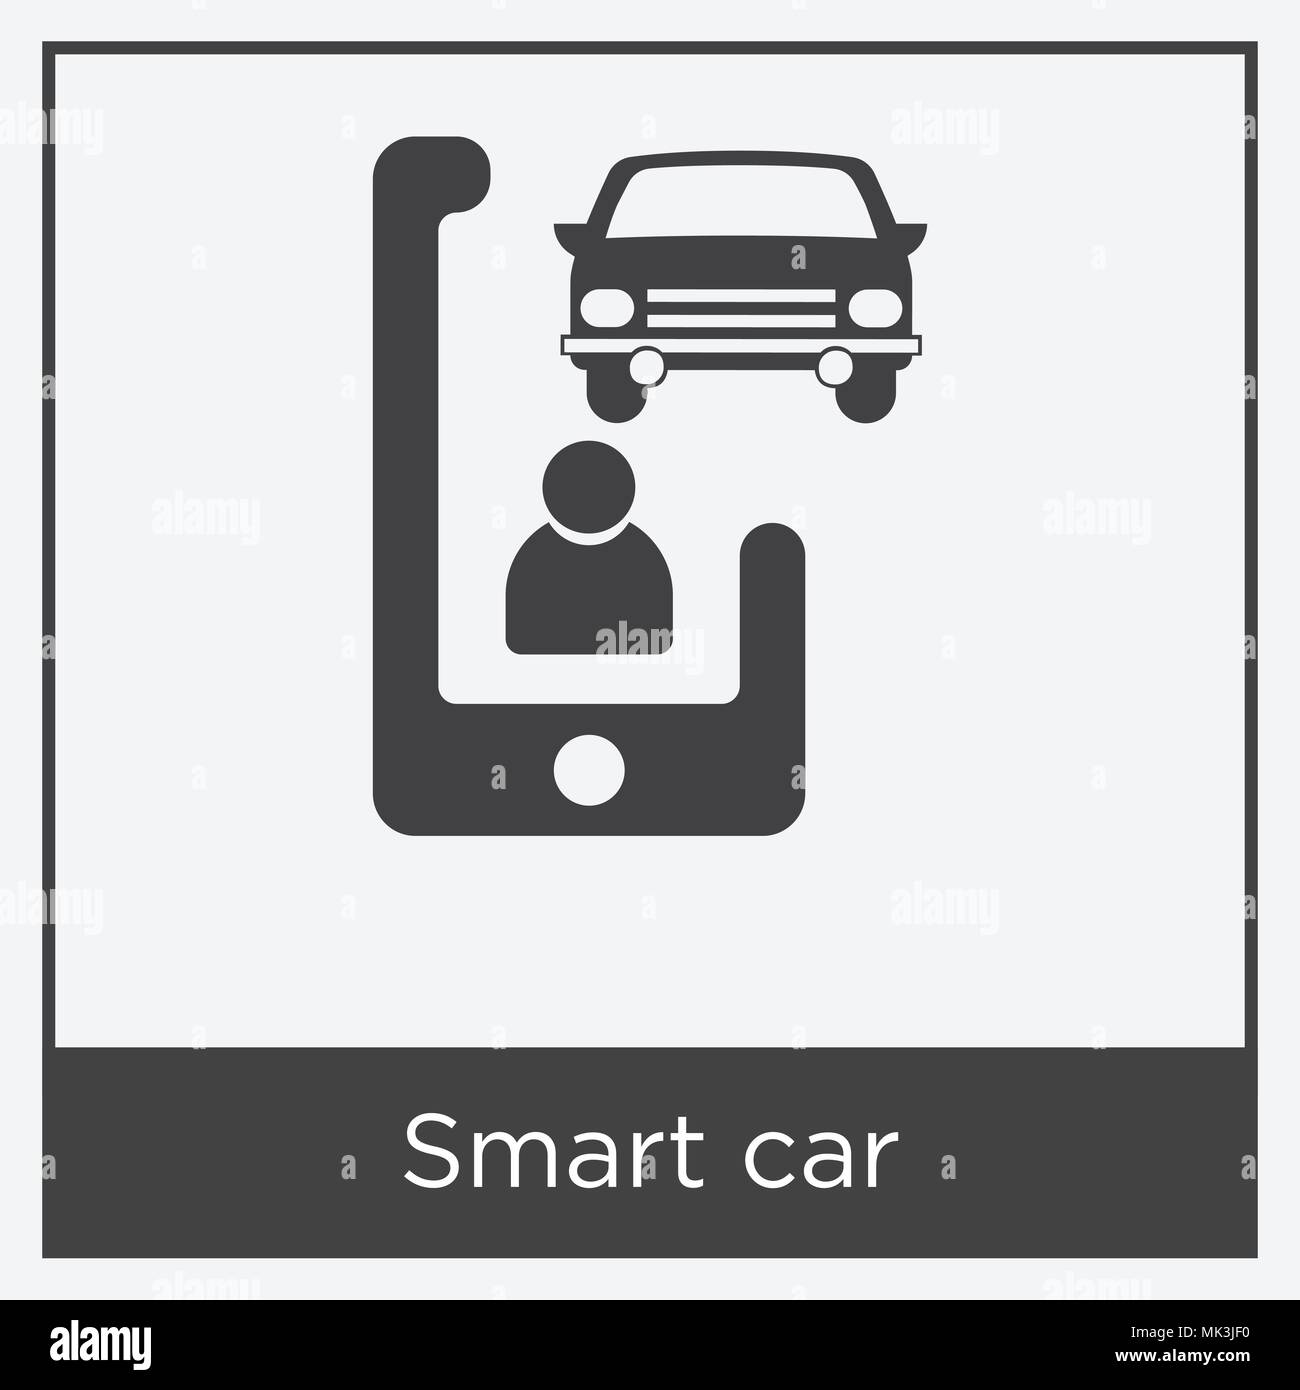 Smart car icon isolated on white background with gray frame, sign ...